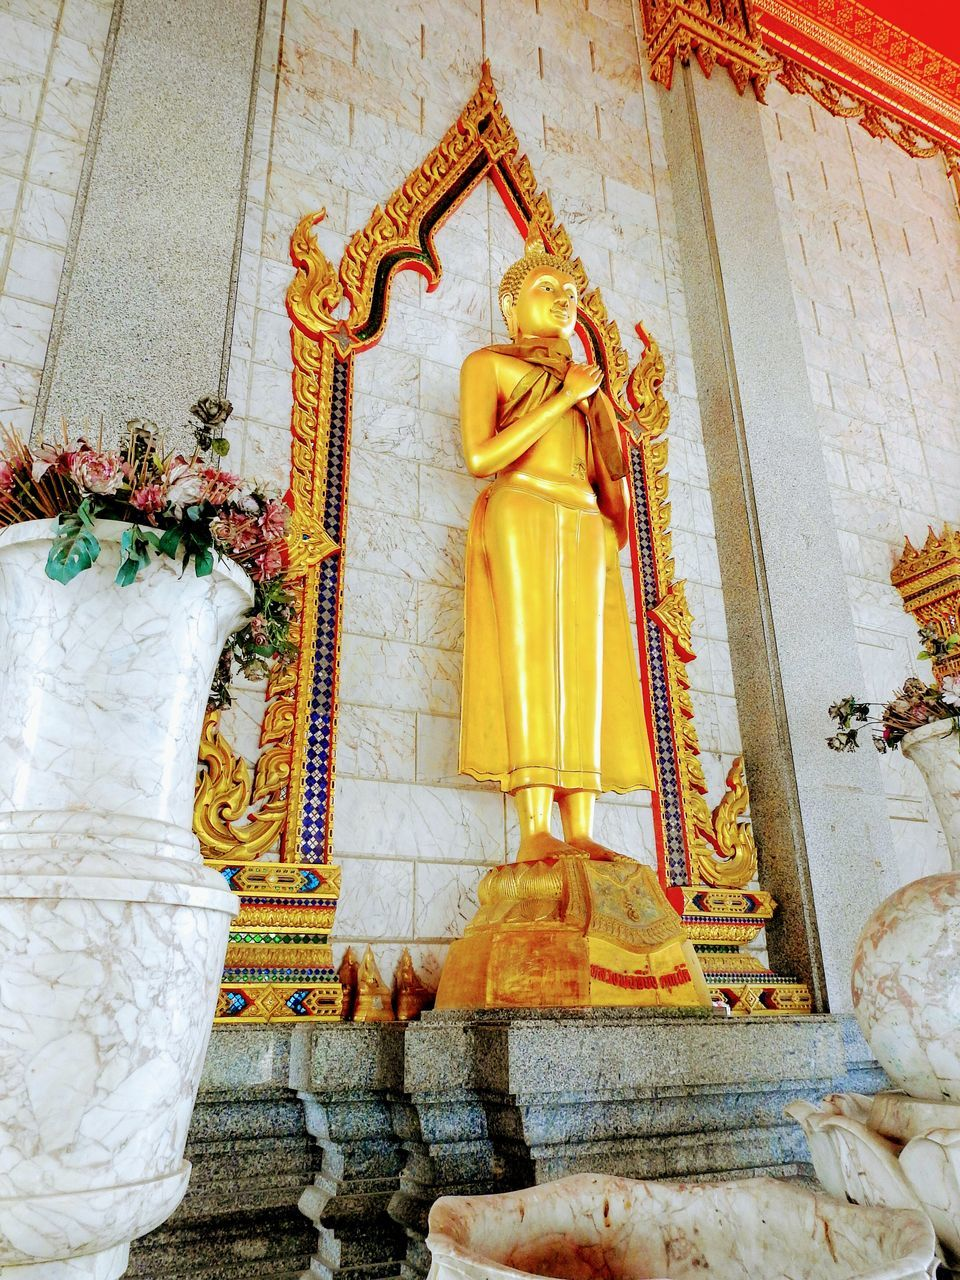 religion, spirituality, statue, male likeness, place of worship, human representation, sculpture, low angle view, gold colored, no people, built structure, golden color, indoors, day, idol, architecture